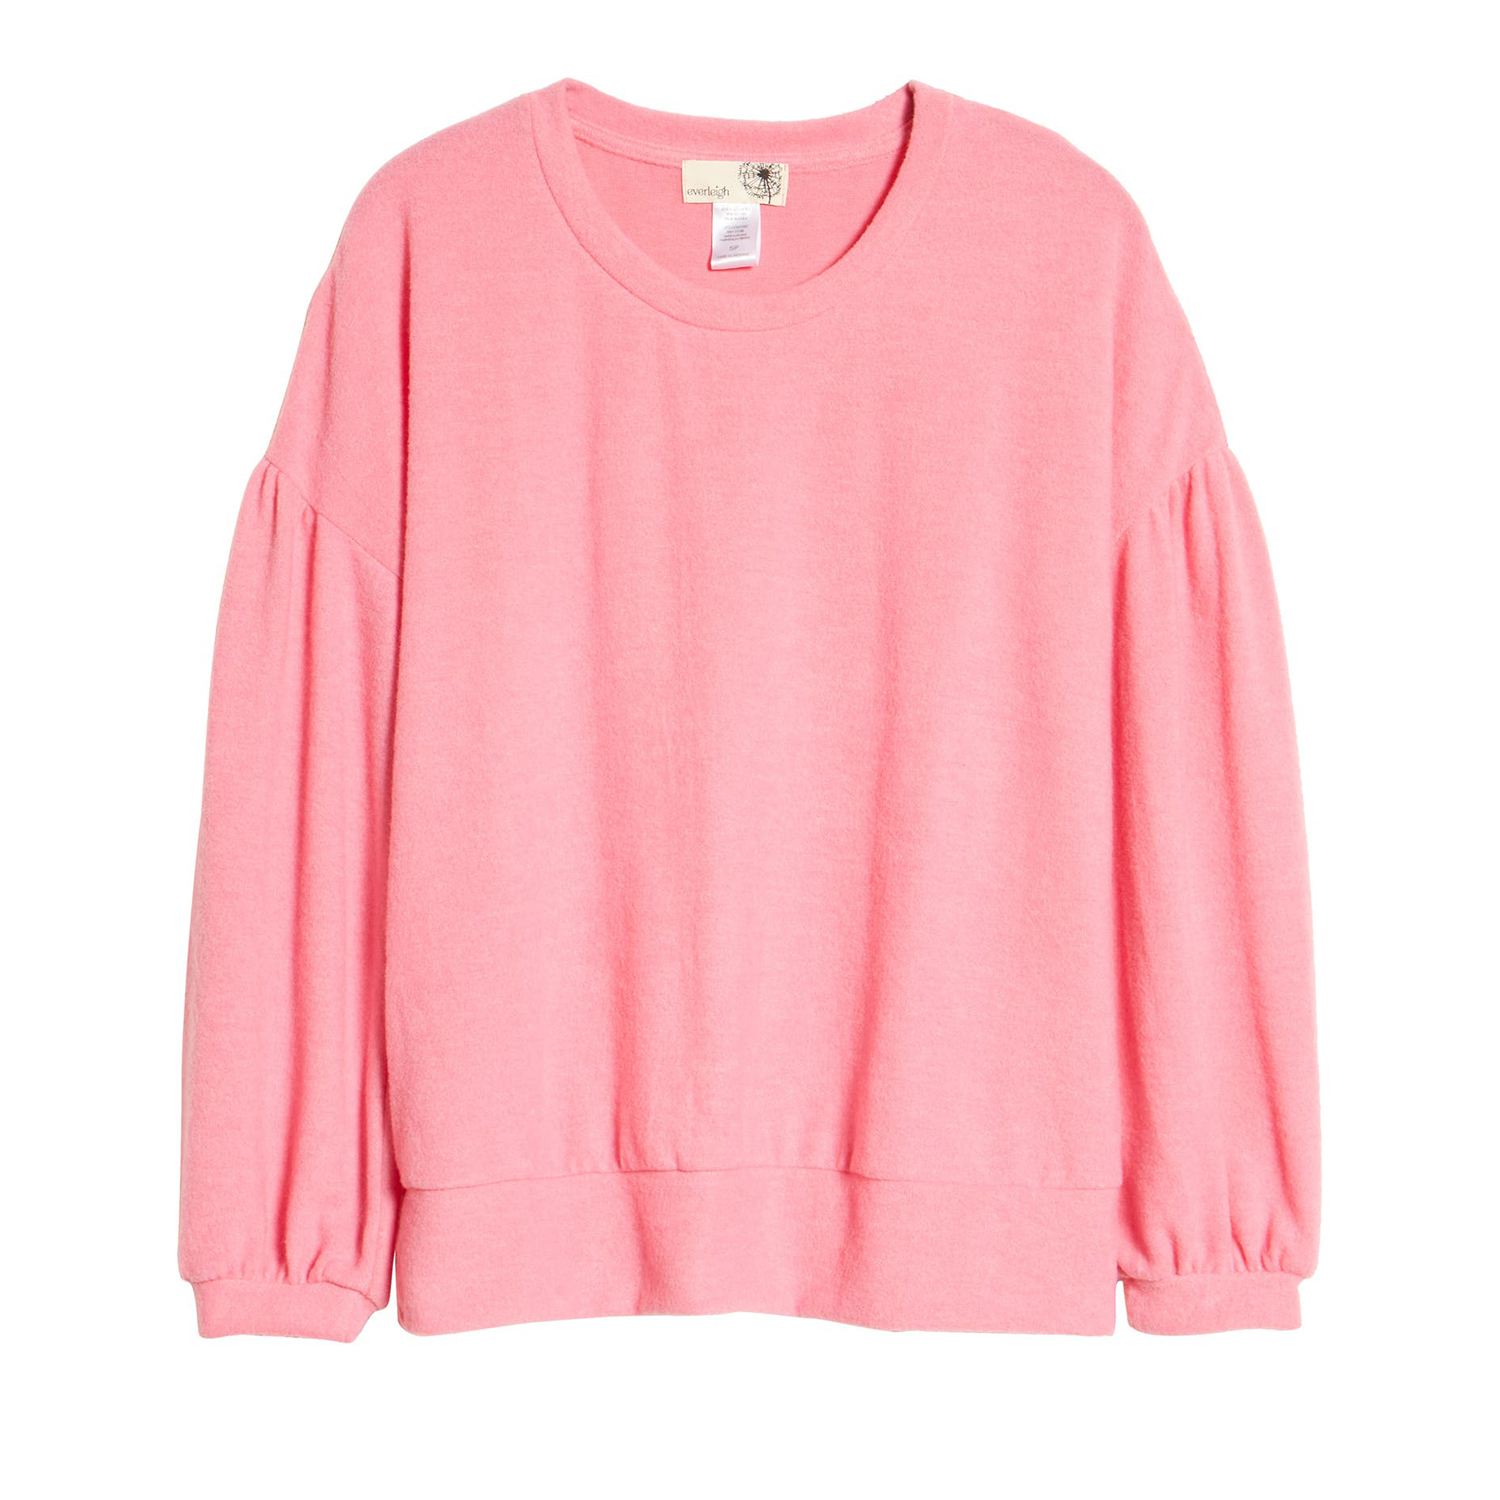 Pink Styles That are Perfect for Spring